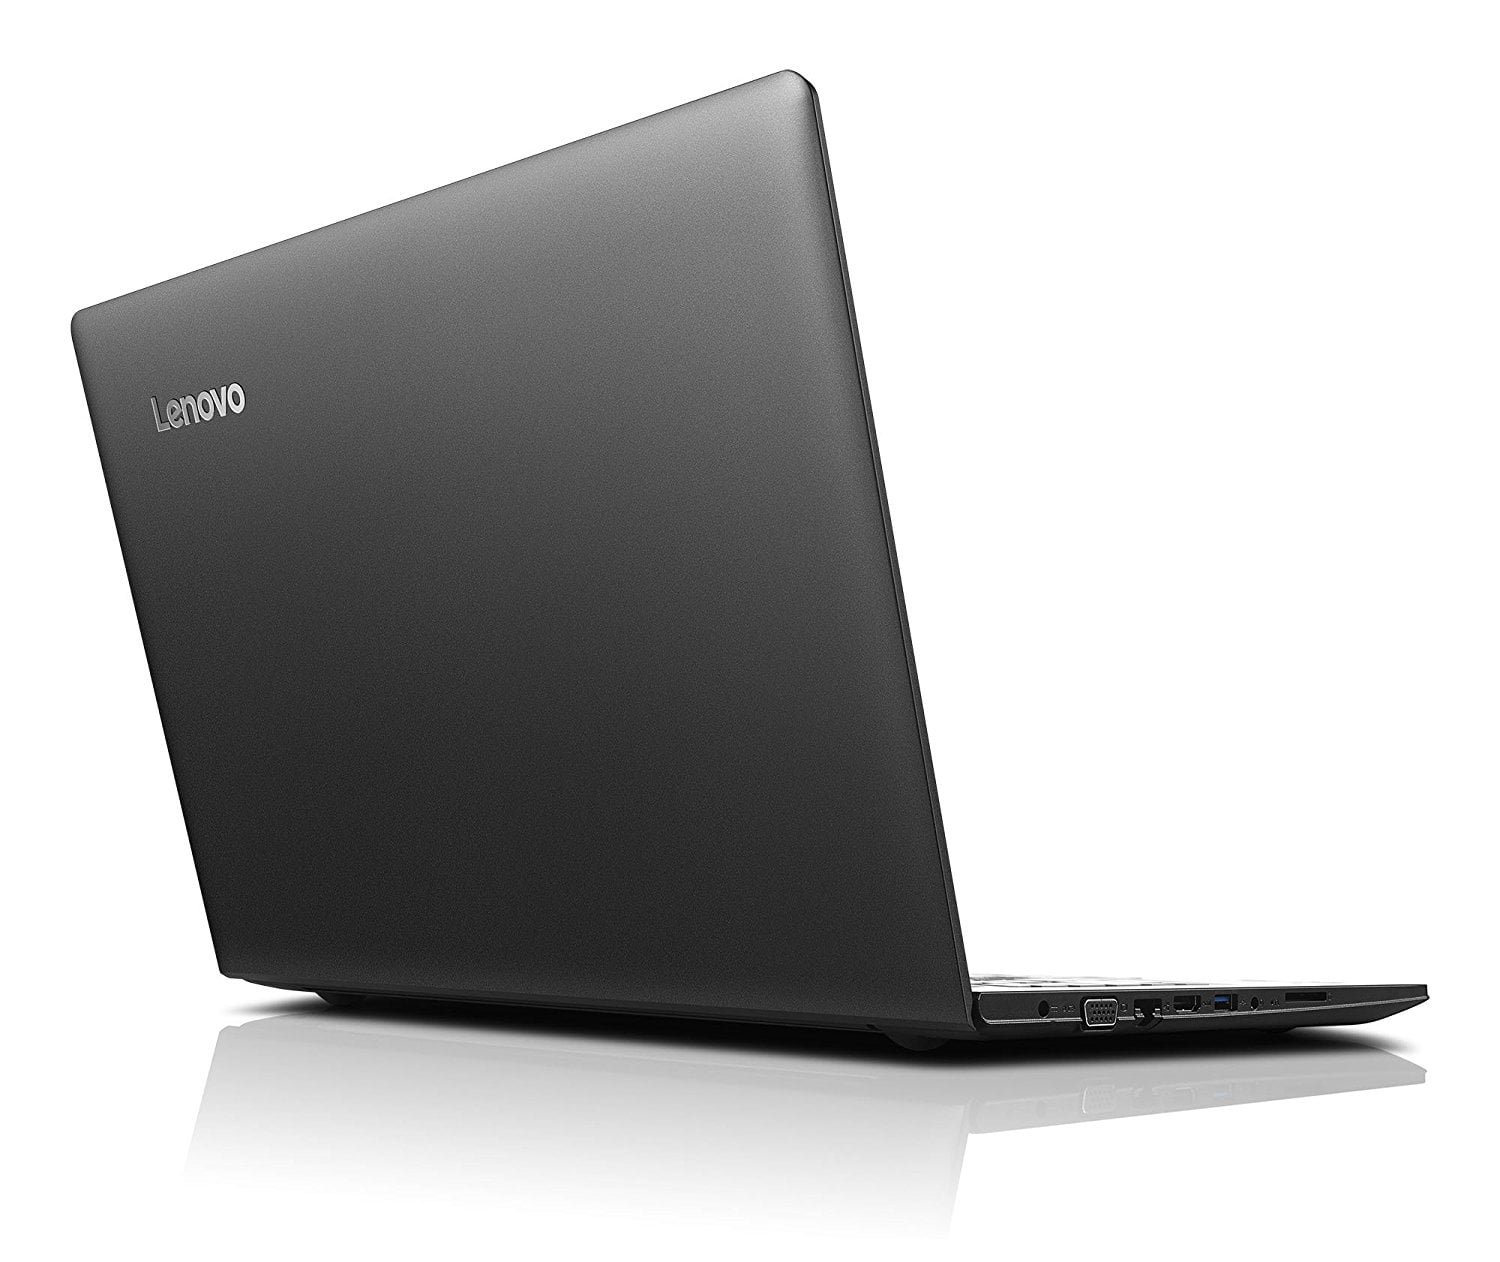 lenovo laptop ideapad 510 80sv0058us review